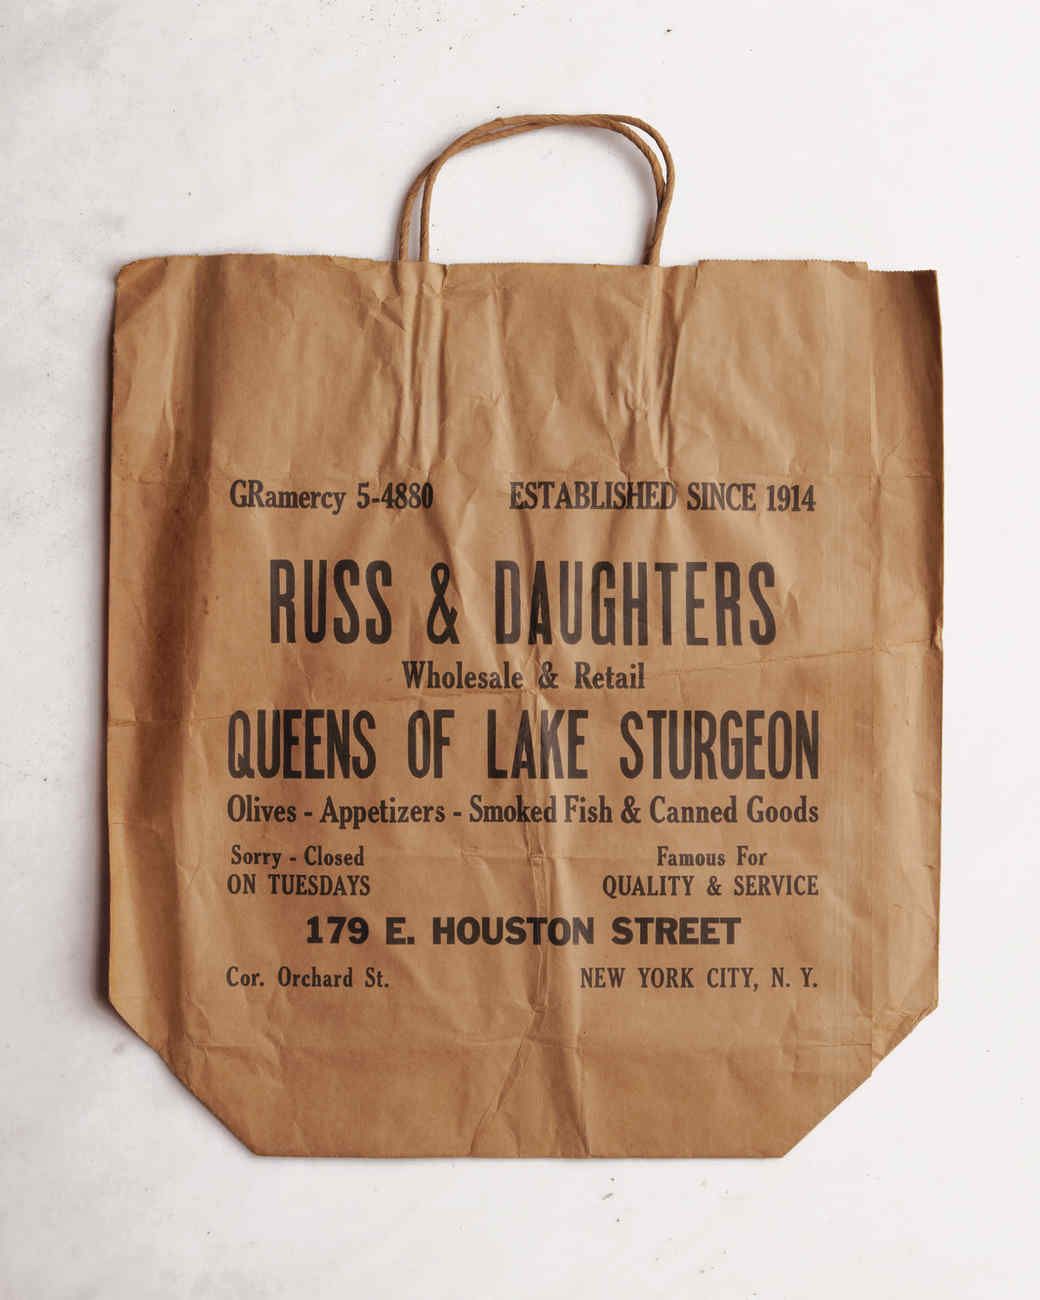 russ-and-daughters-bag-md108873.jpg